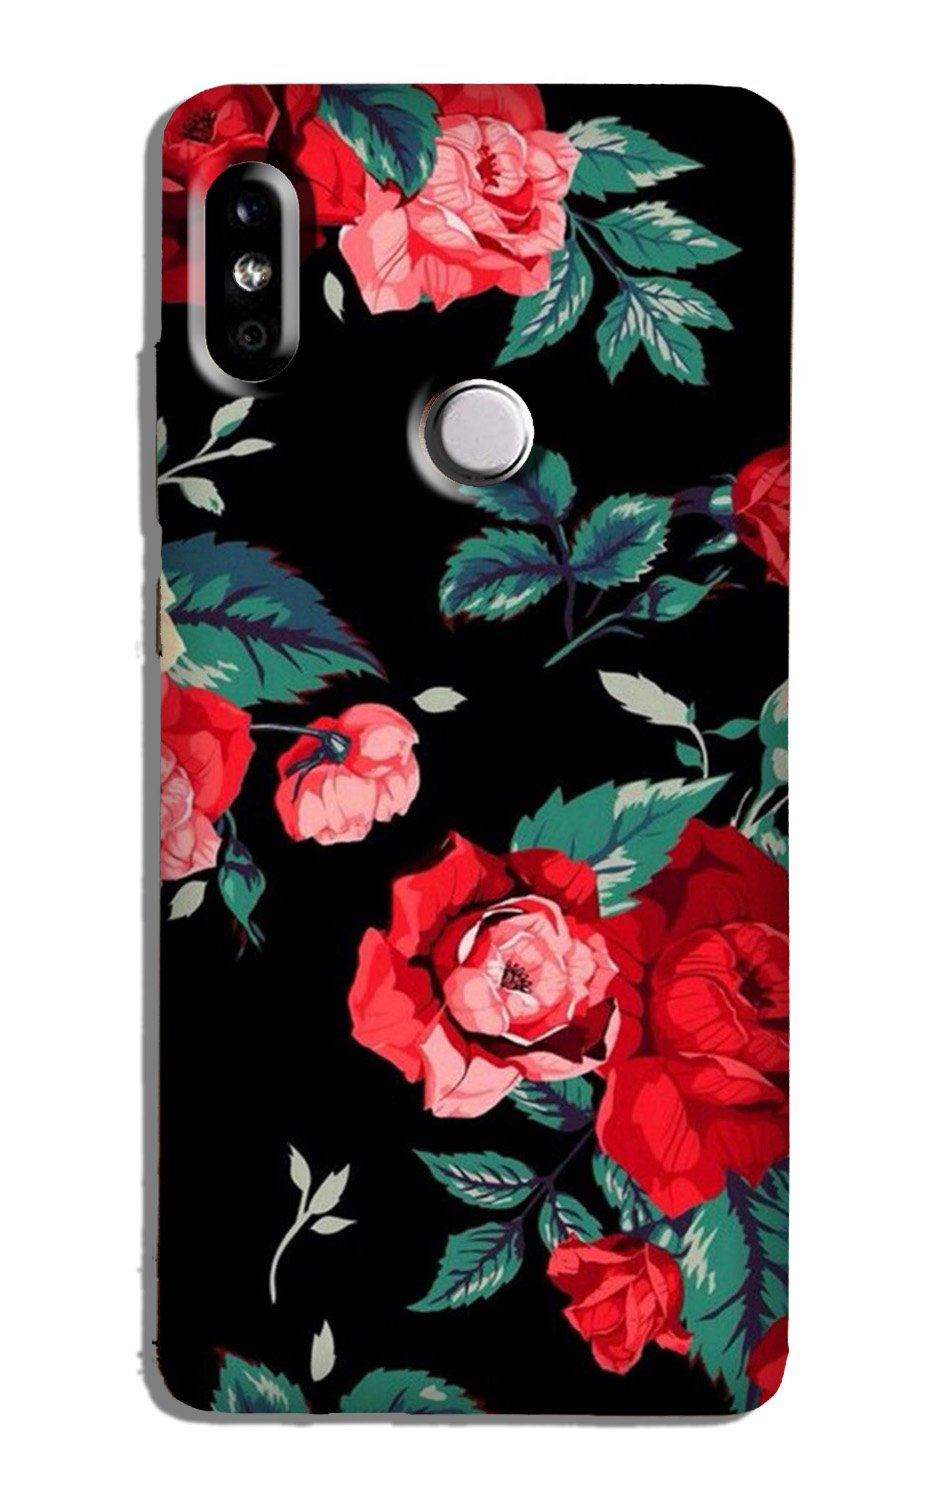 Red Rose Case for Redmi Note 5 Pro